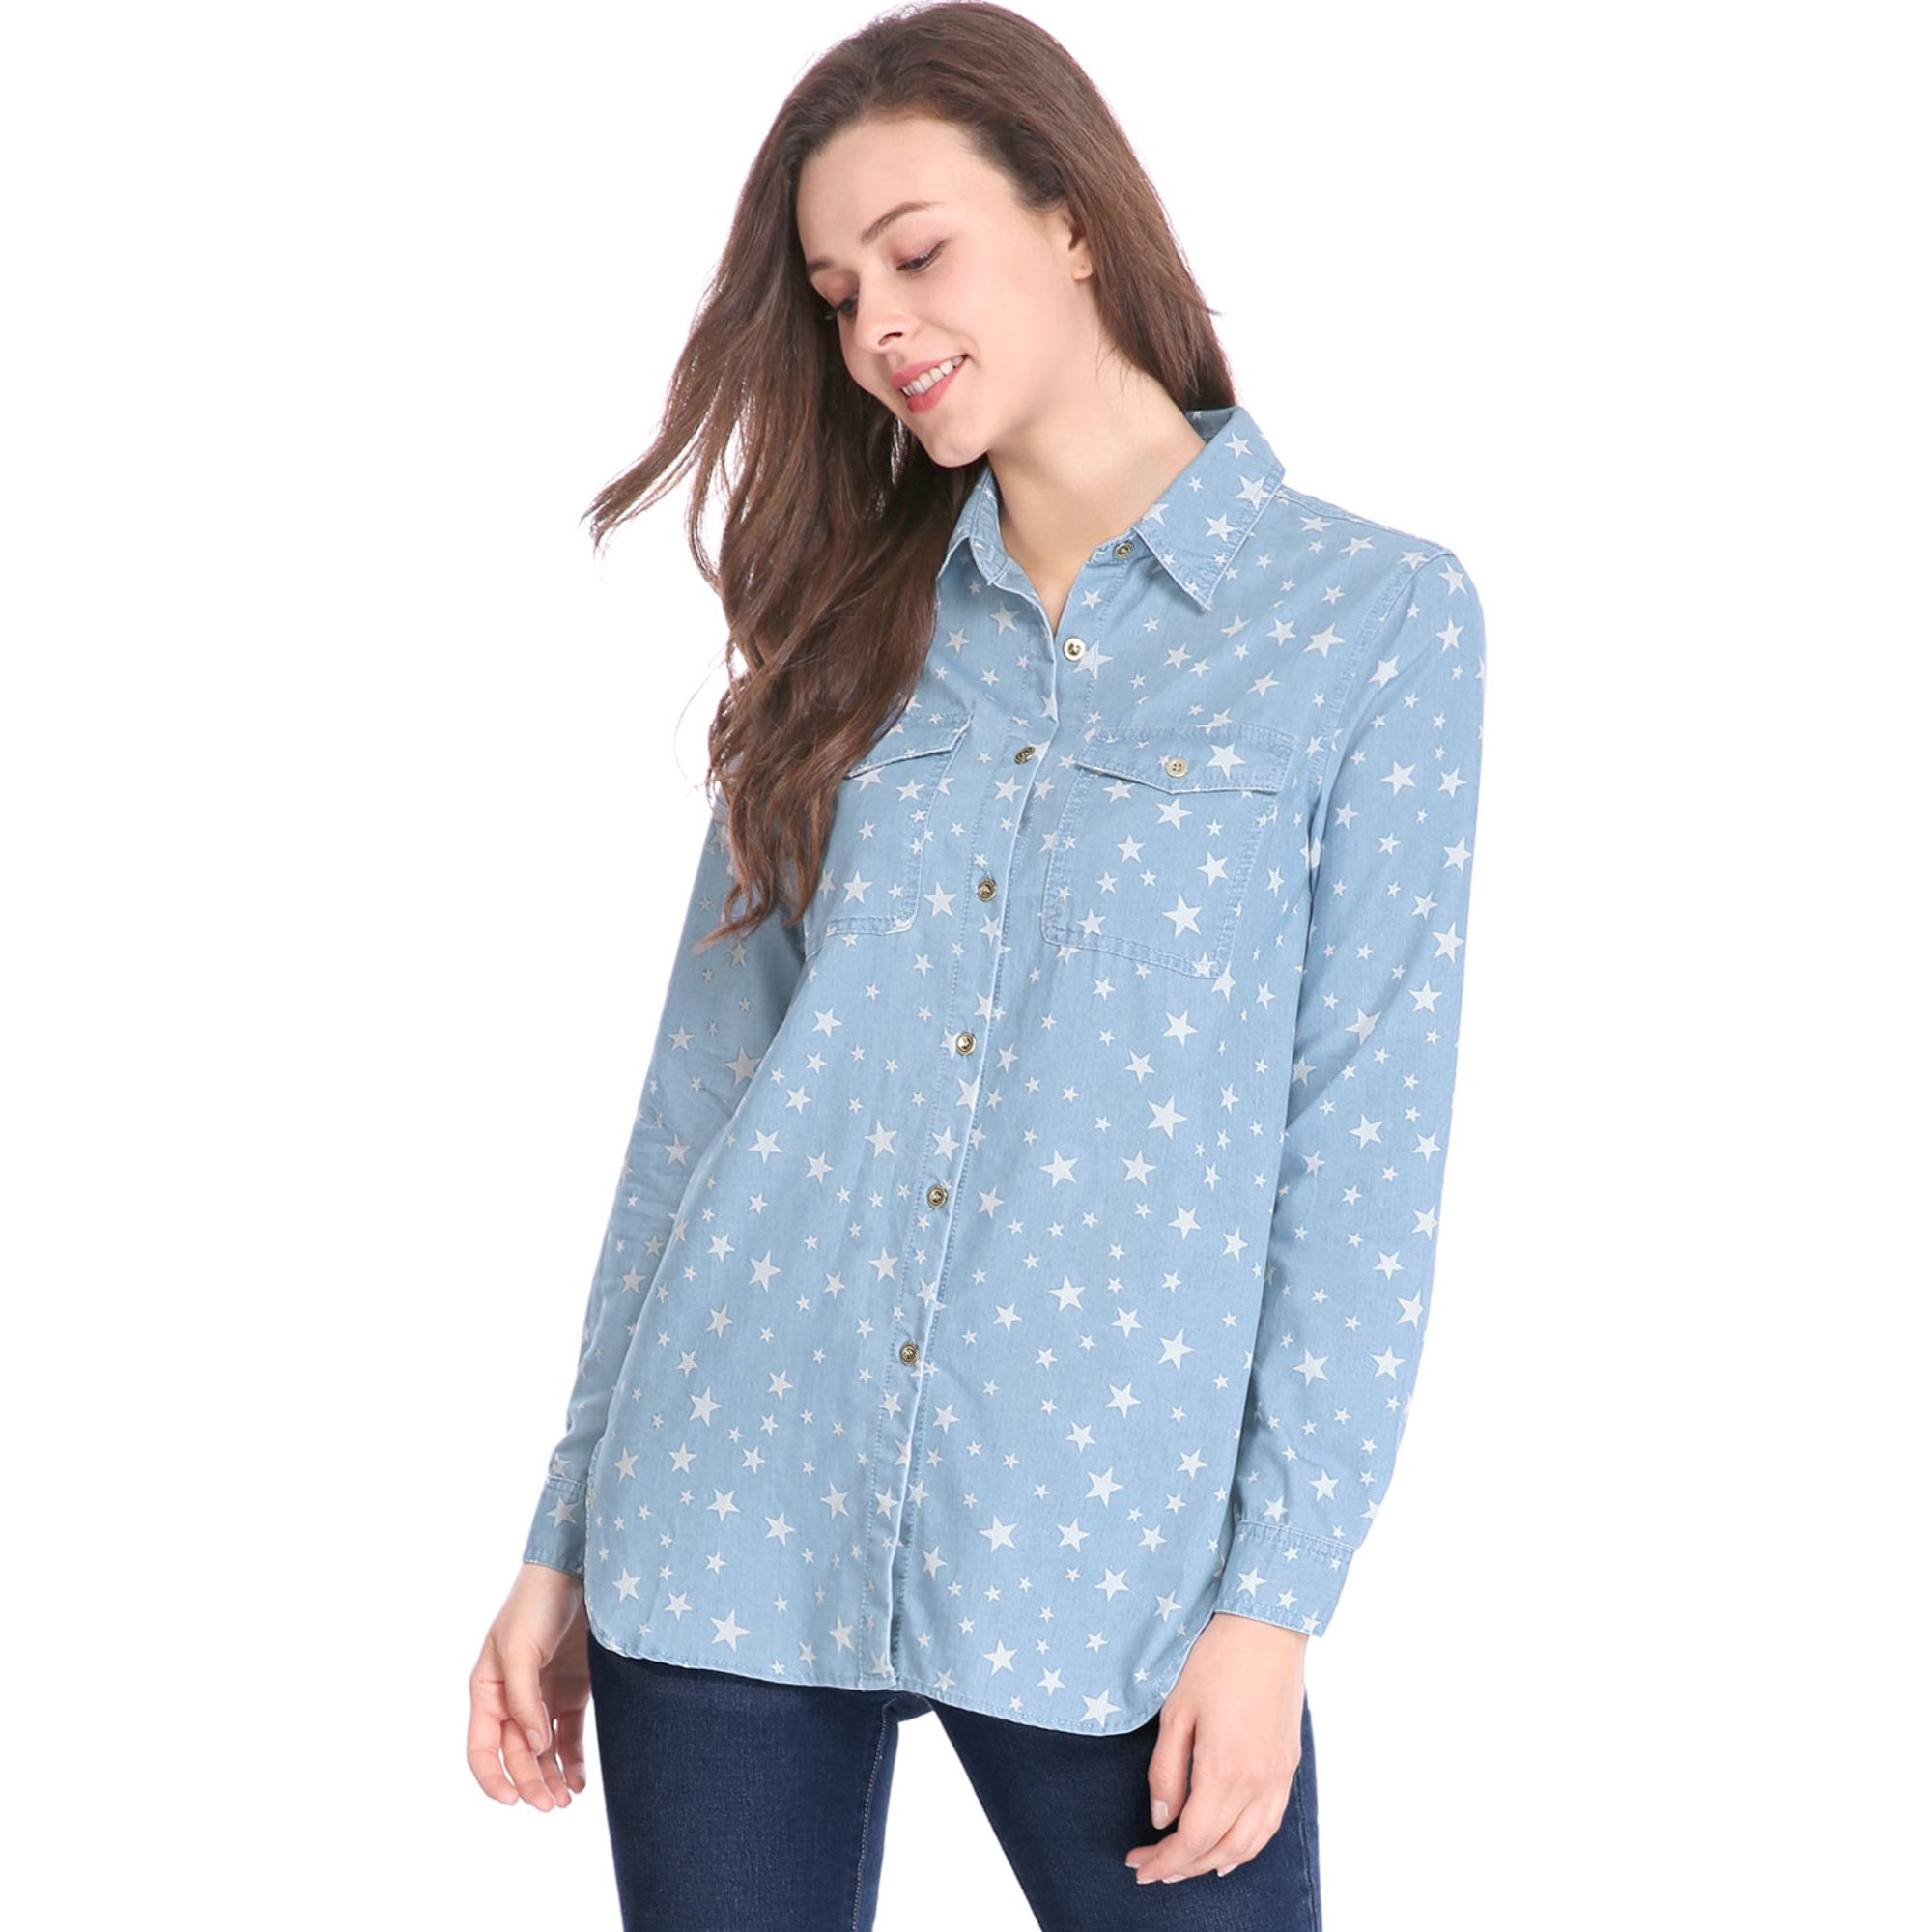 00448e267 Button Closure Long Sleeve Blue Pocket Denim Shirt - raveitsafe